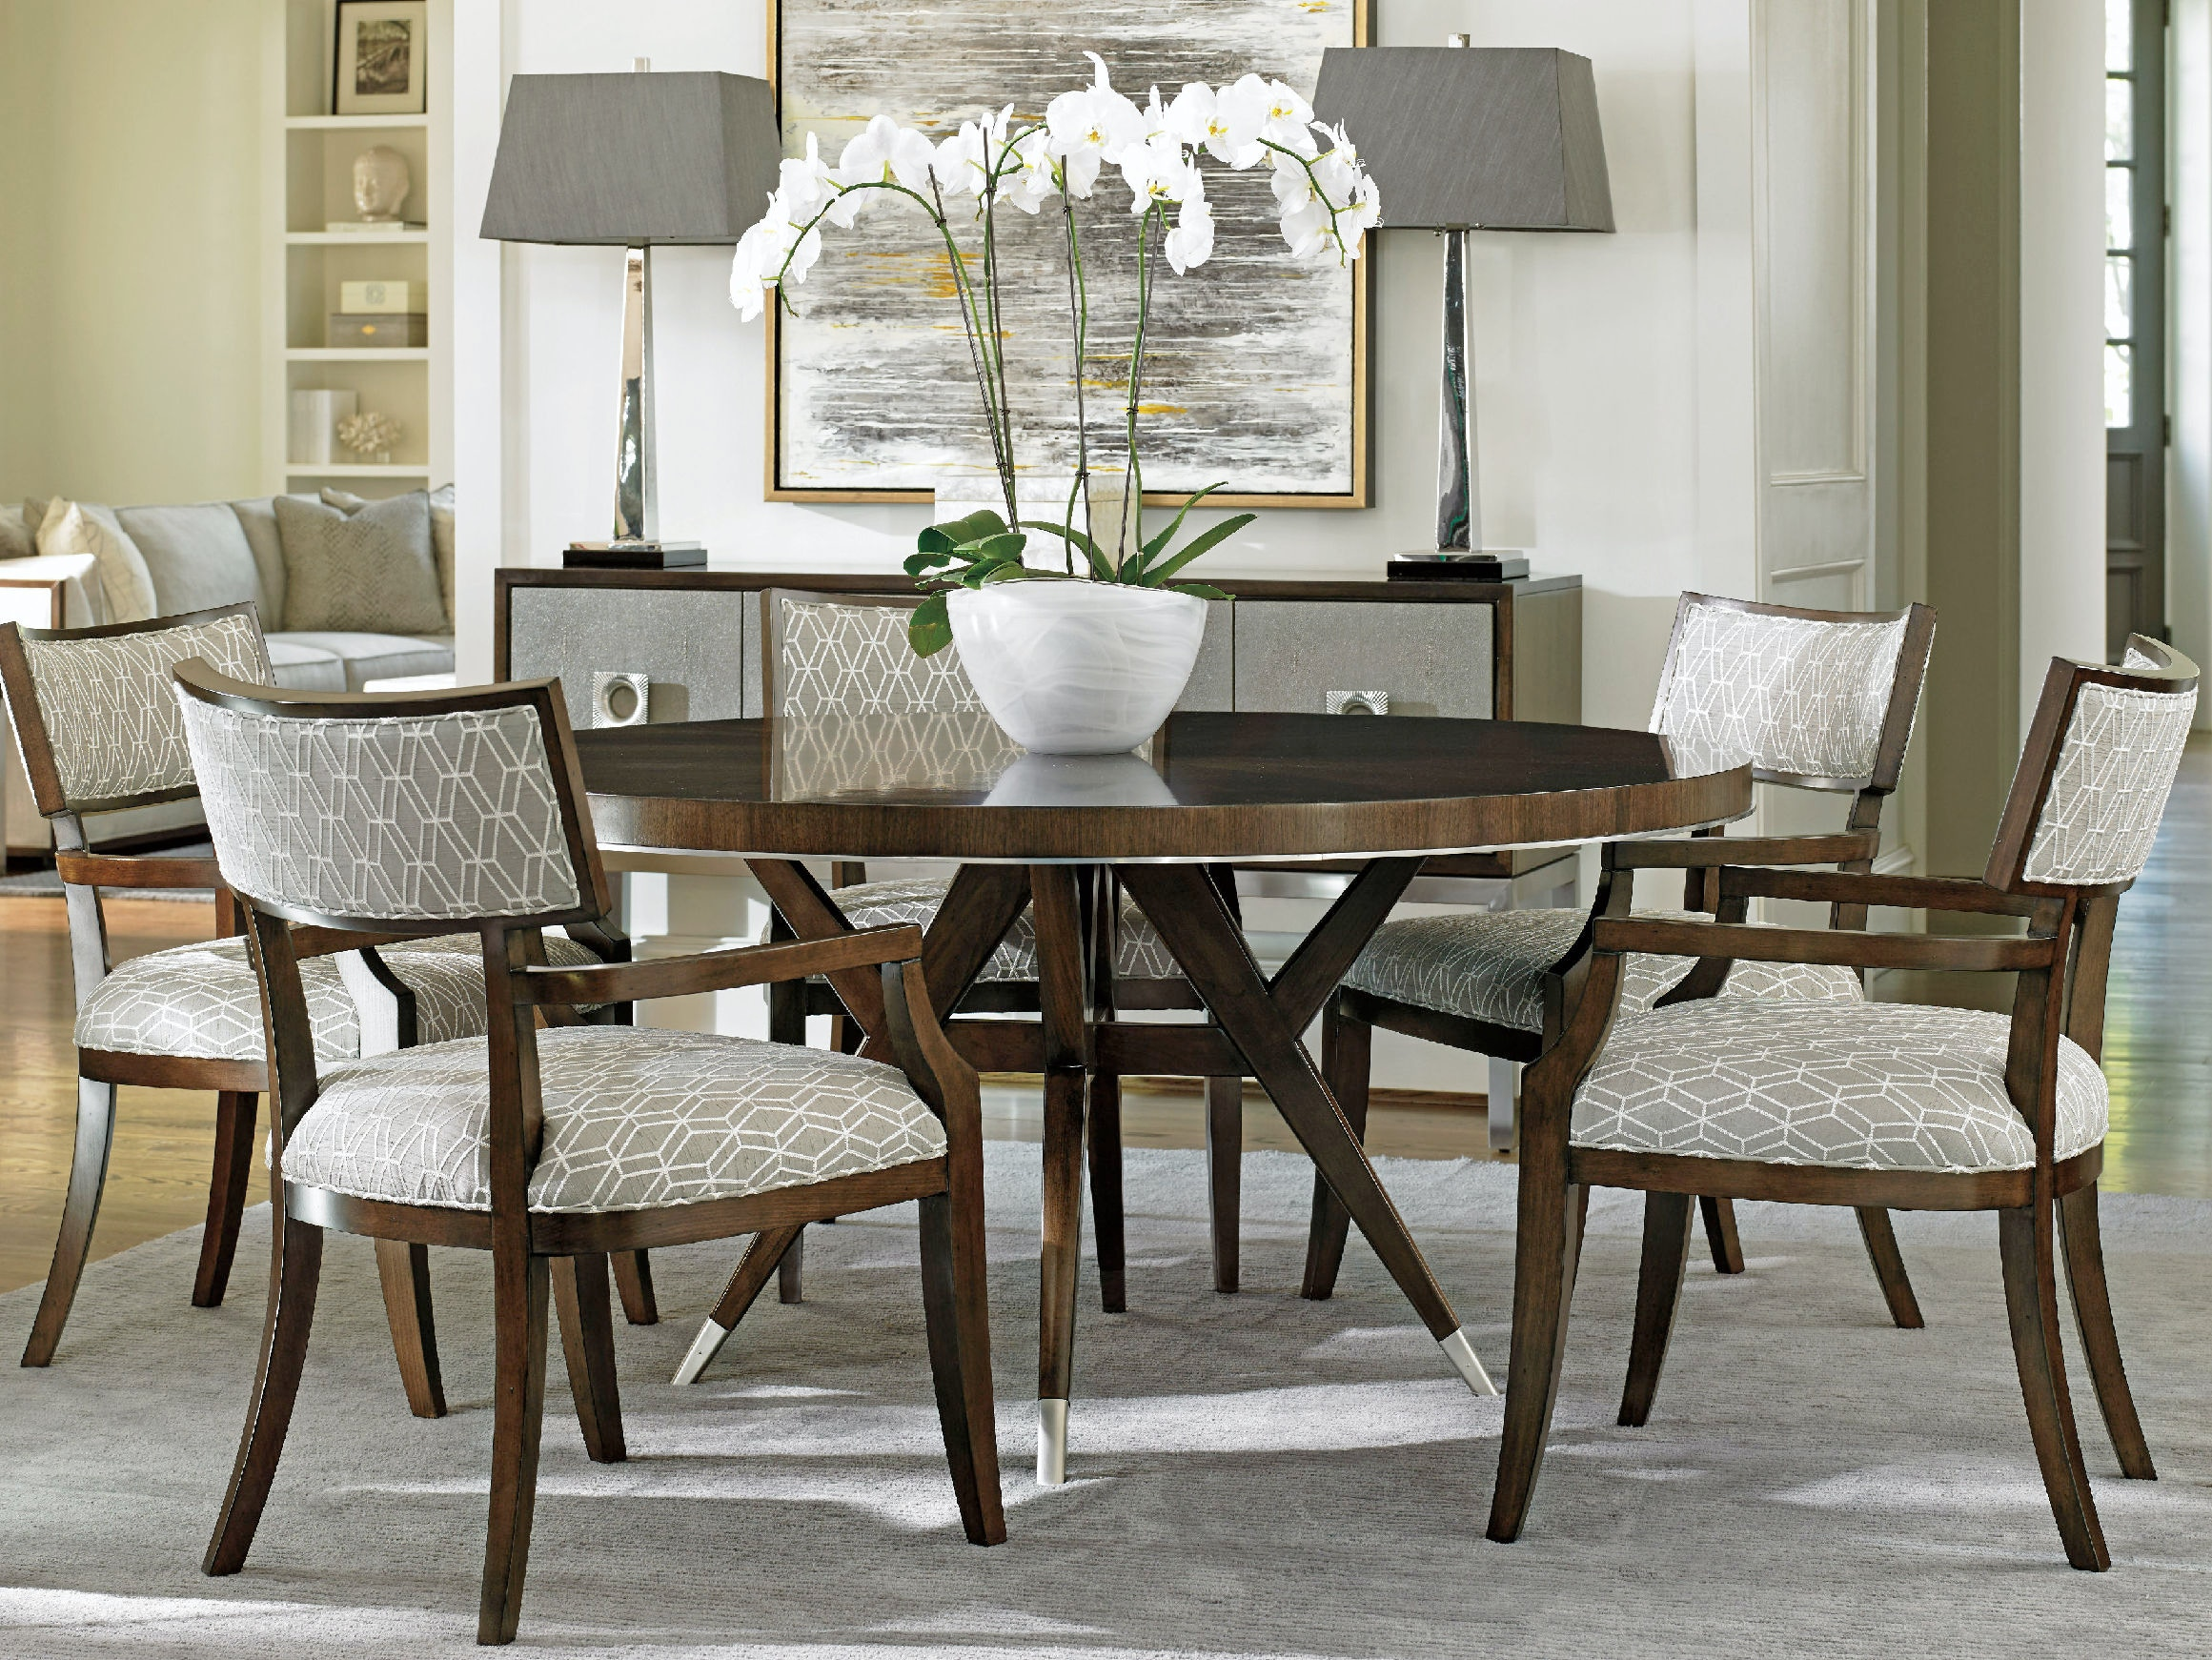 Lexington Dining Room Strathmore Round Dining Table 729  : 729875crs from www.stacyfurniture.com size 1024 x 768 jpeg 121kB